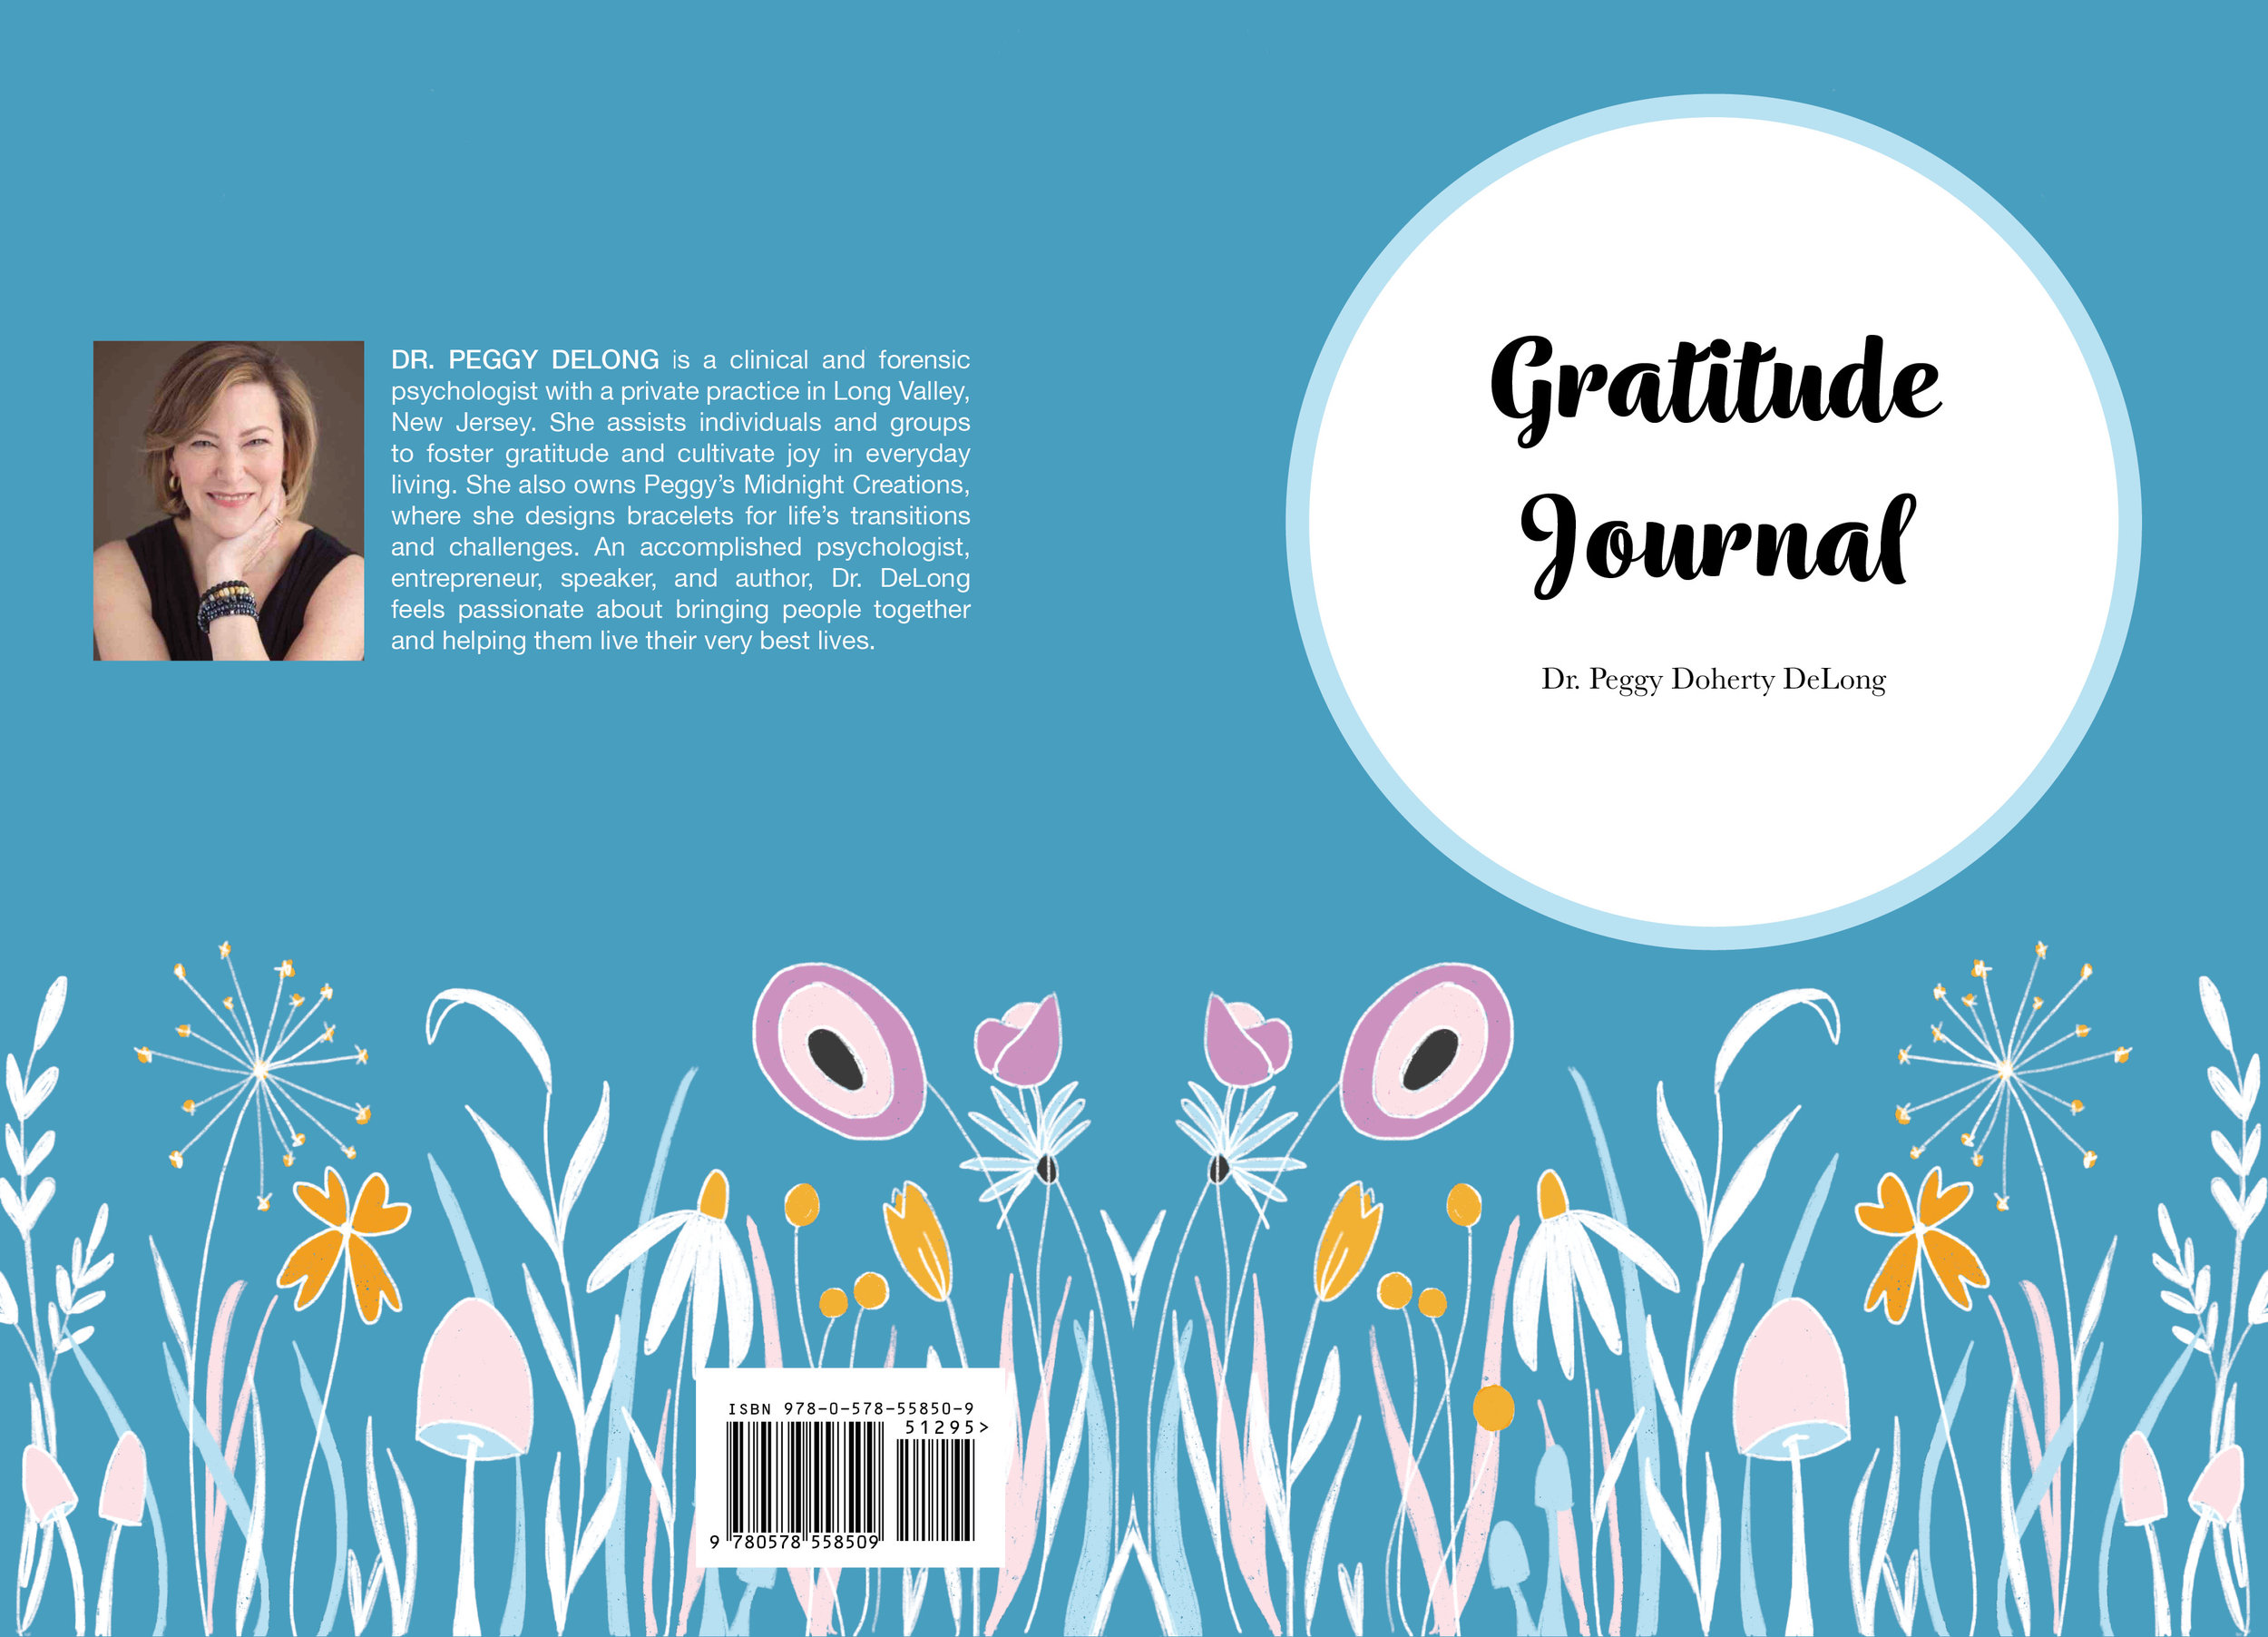 Gratitude_Journal_Cover_v2_5.5x8.5.jpg